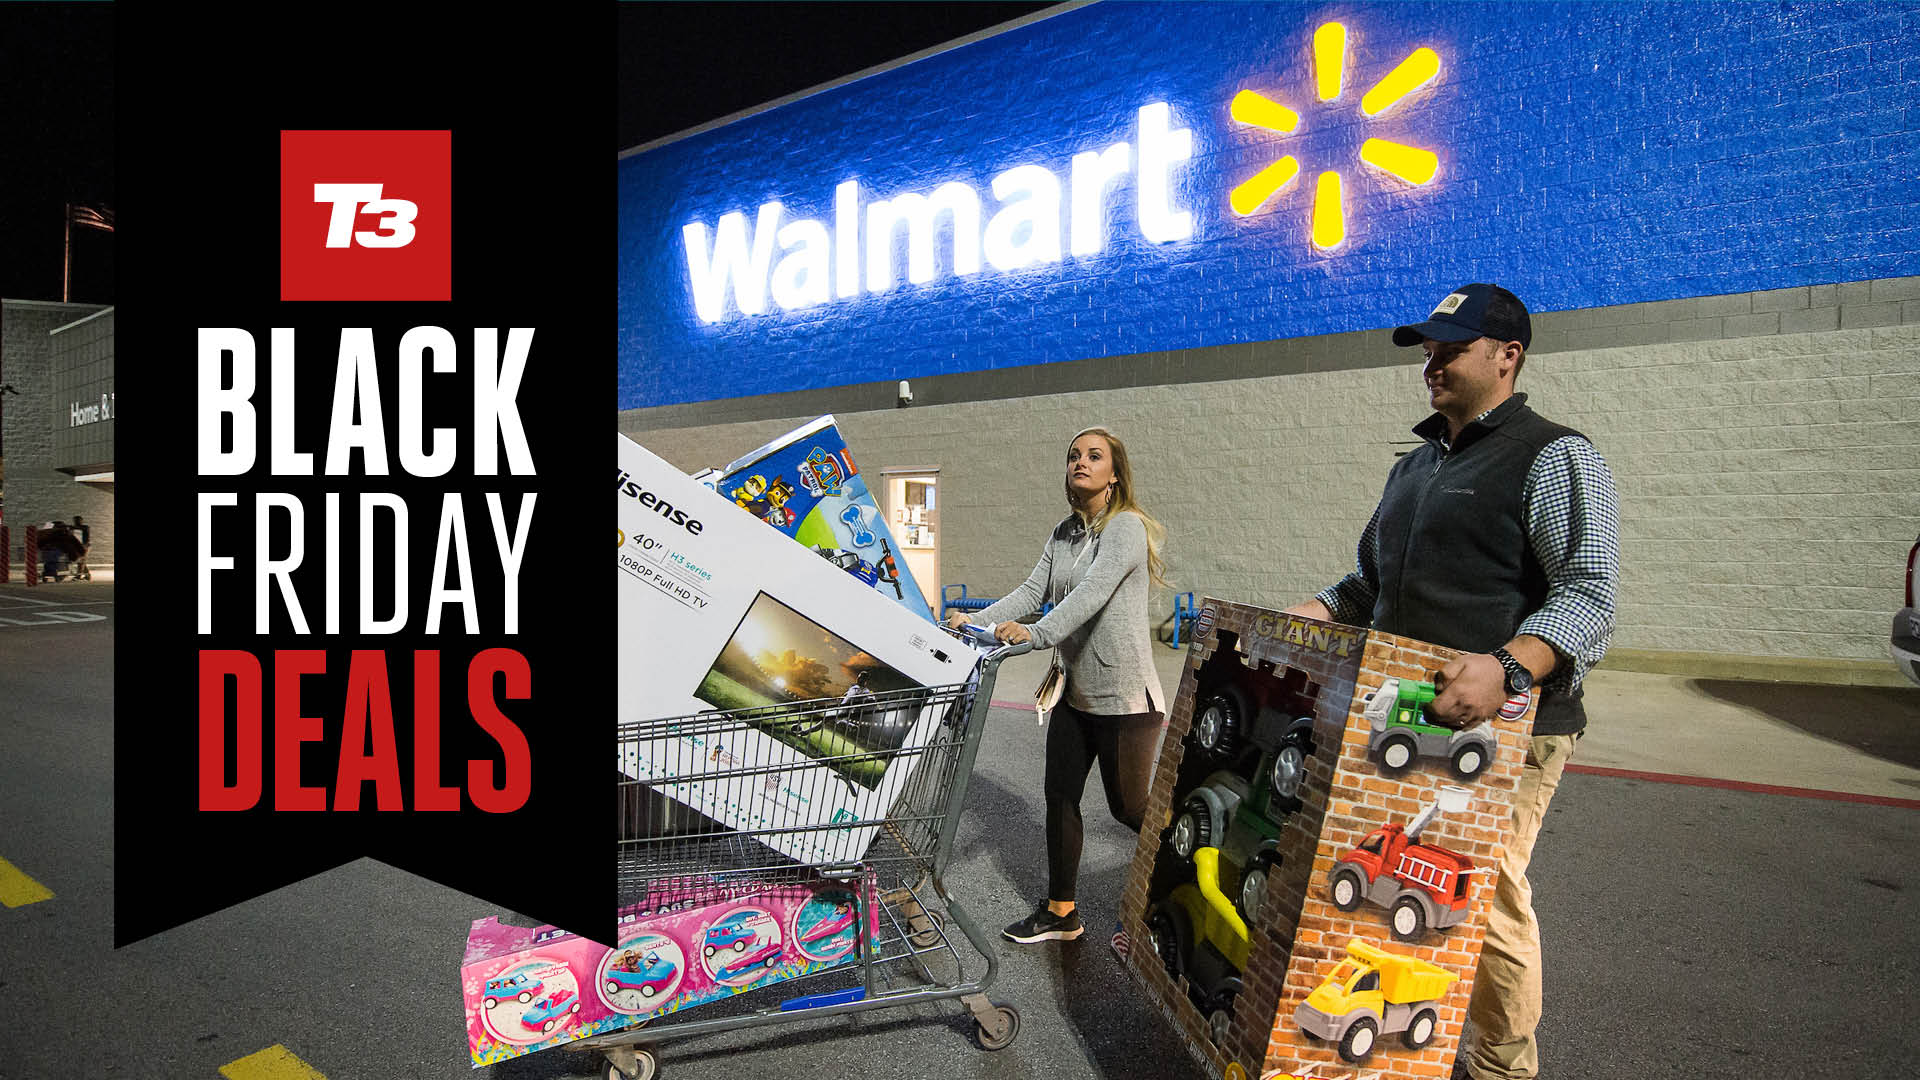 Walmart Cyber Monday Deals What To Expect T3